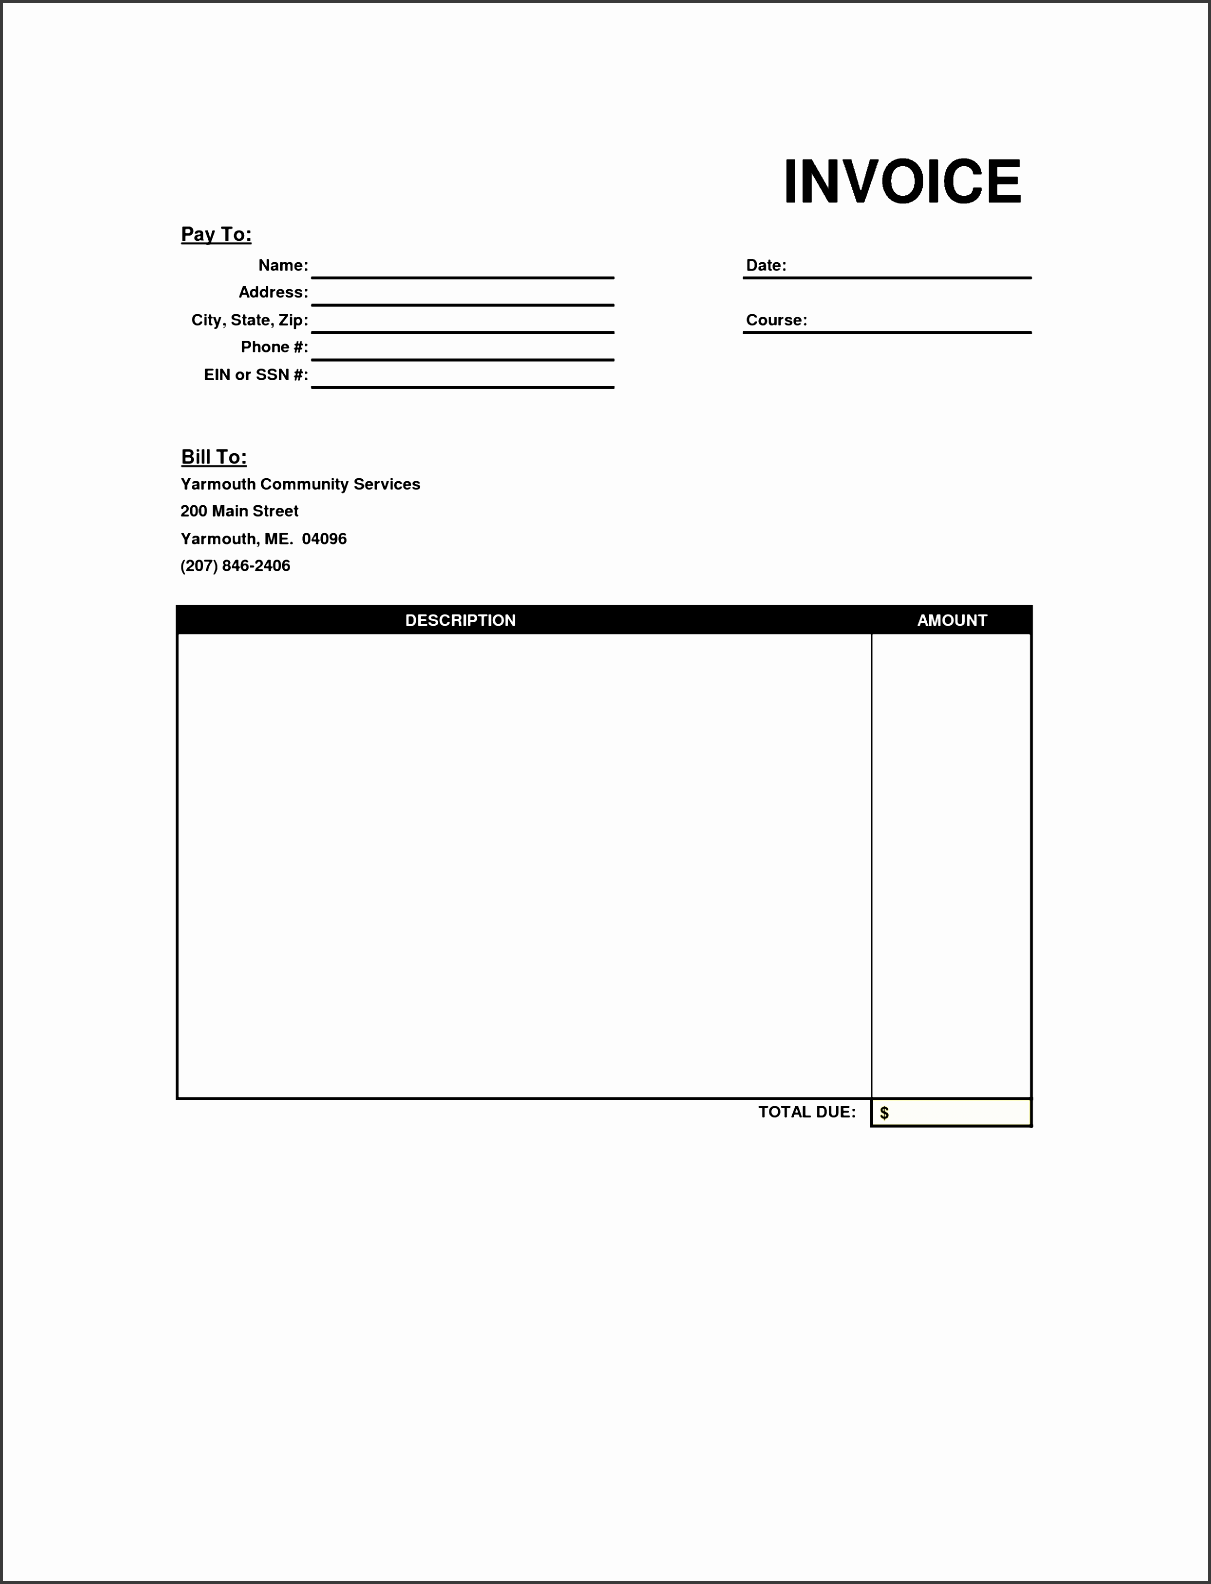 free printable invoice template uk free basic blank invoice template professional resume uk templates word 23 ms simple doc sample vat 2007 microsoft example lfnvzh 3 zoom 2 625 w 618